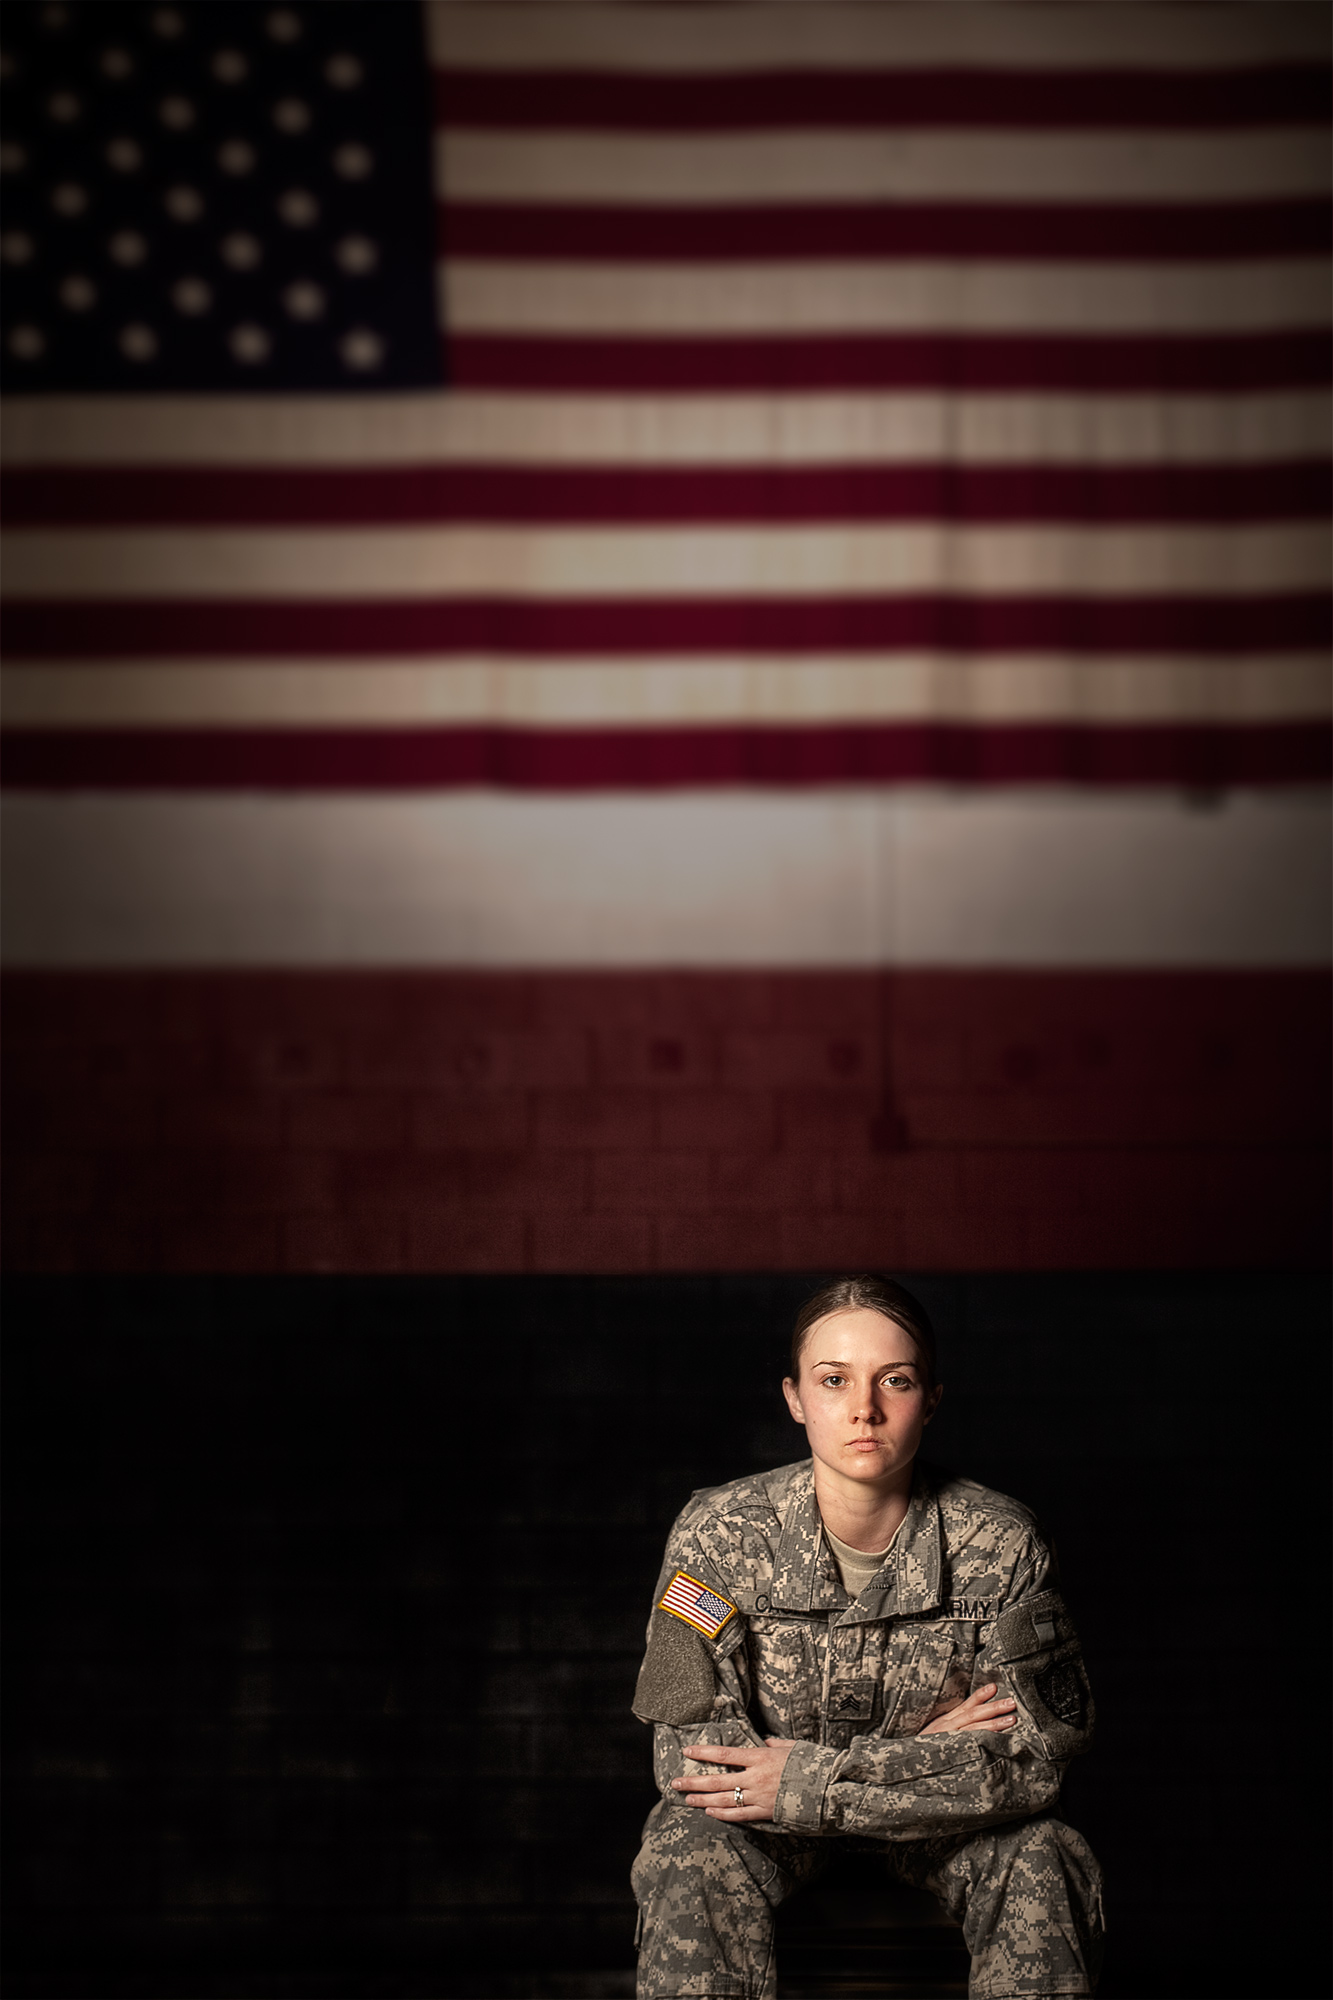 Portrait of female soldier, U.S Army for a magazine feature photographed by Kevin Brusie.